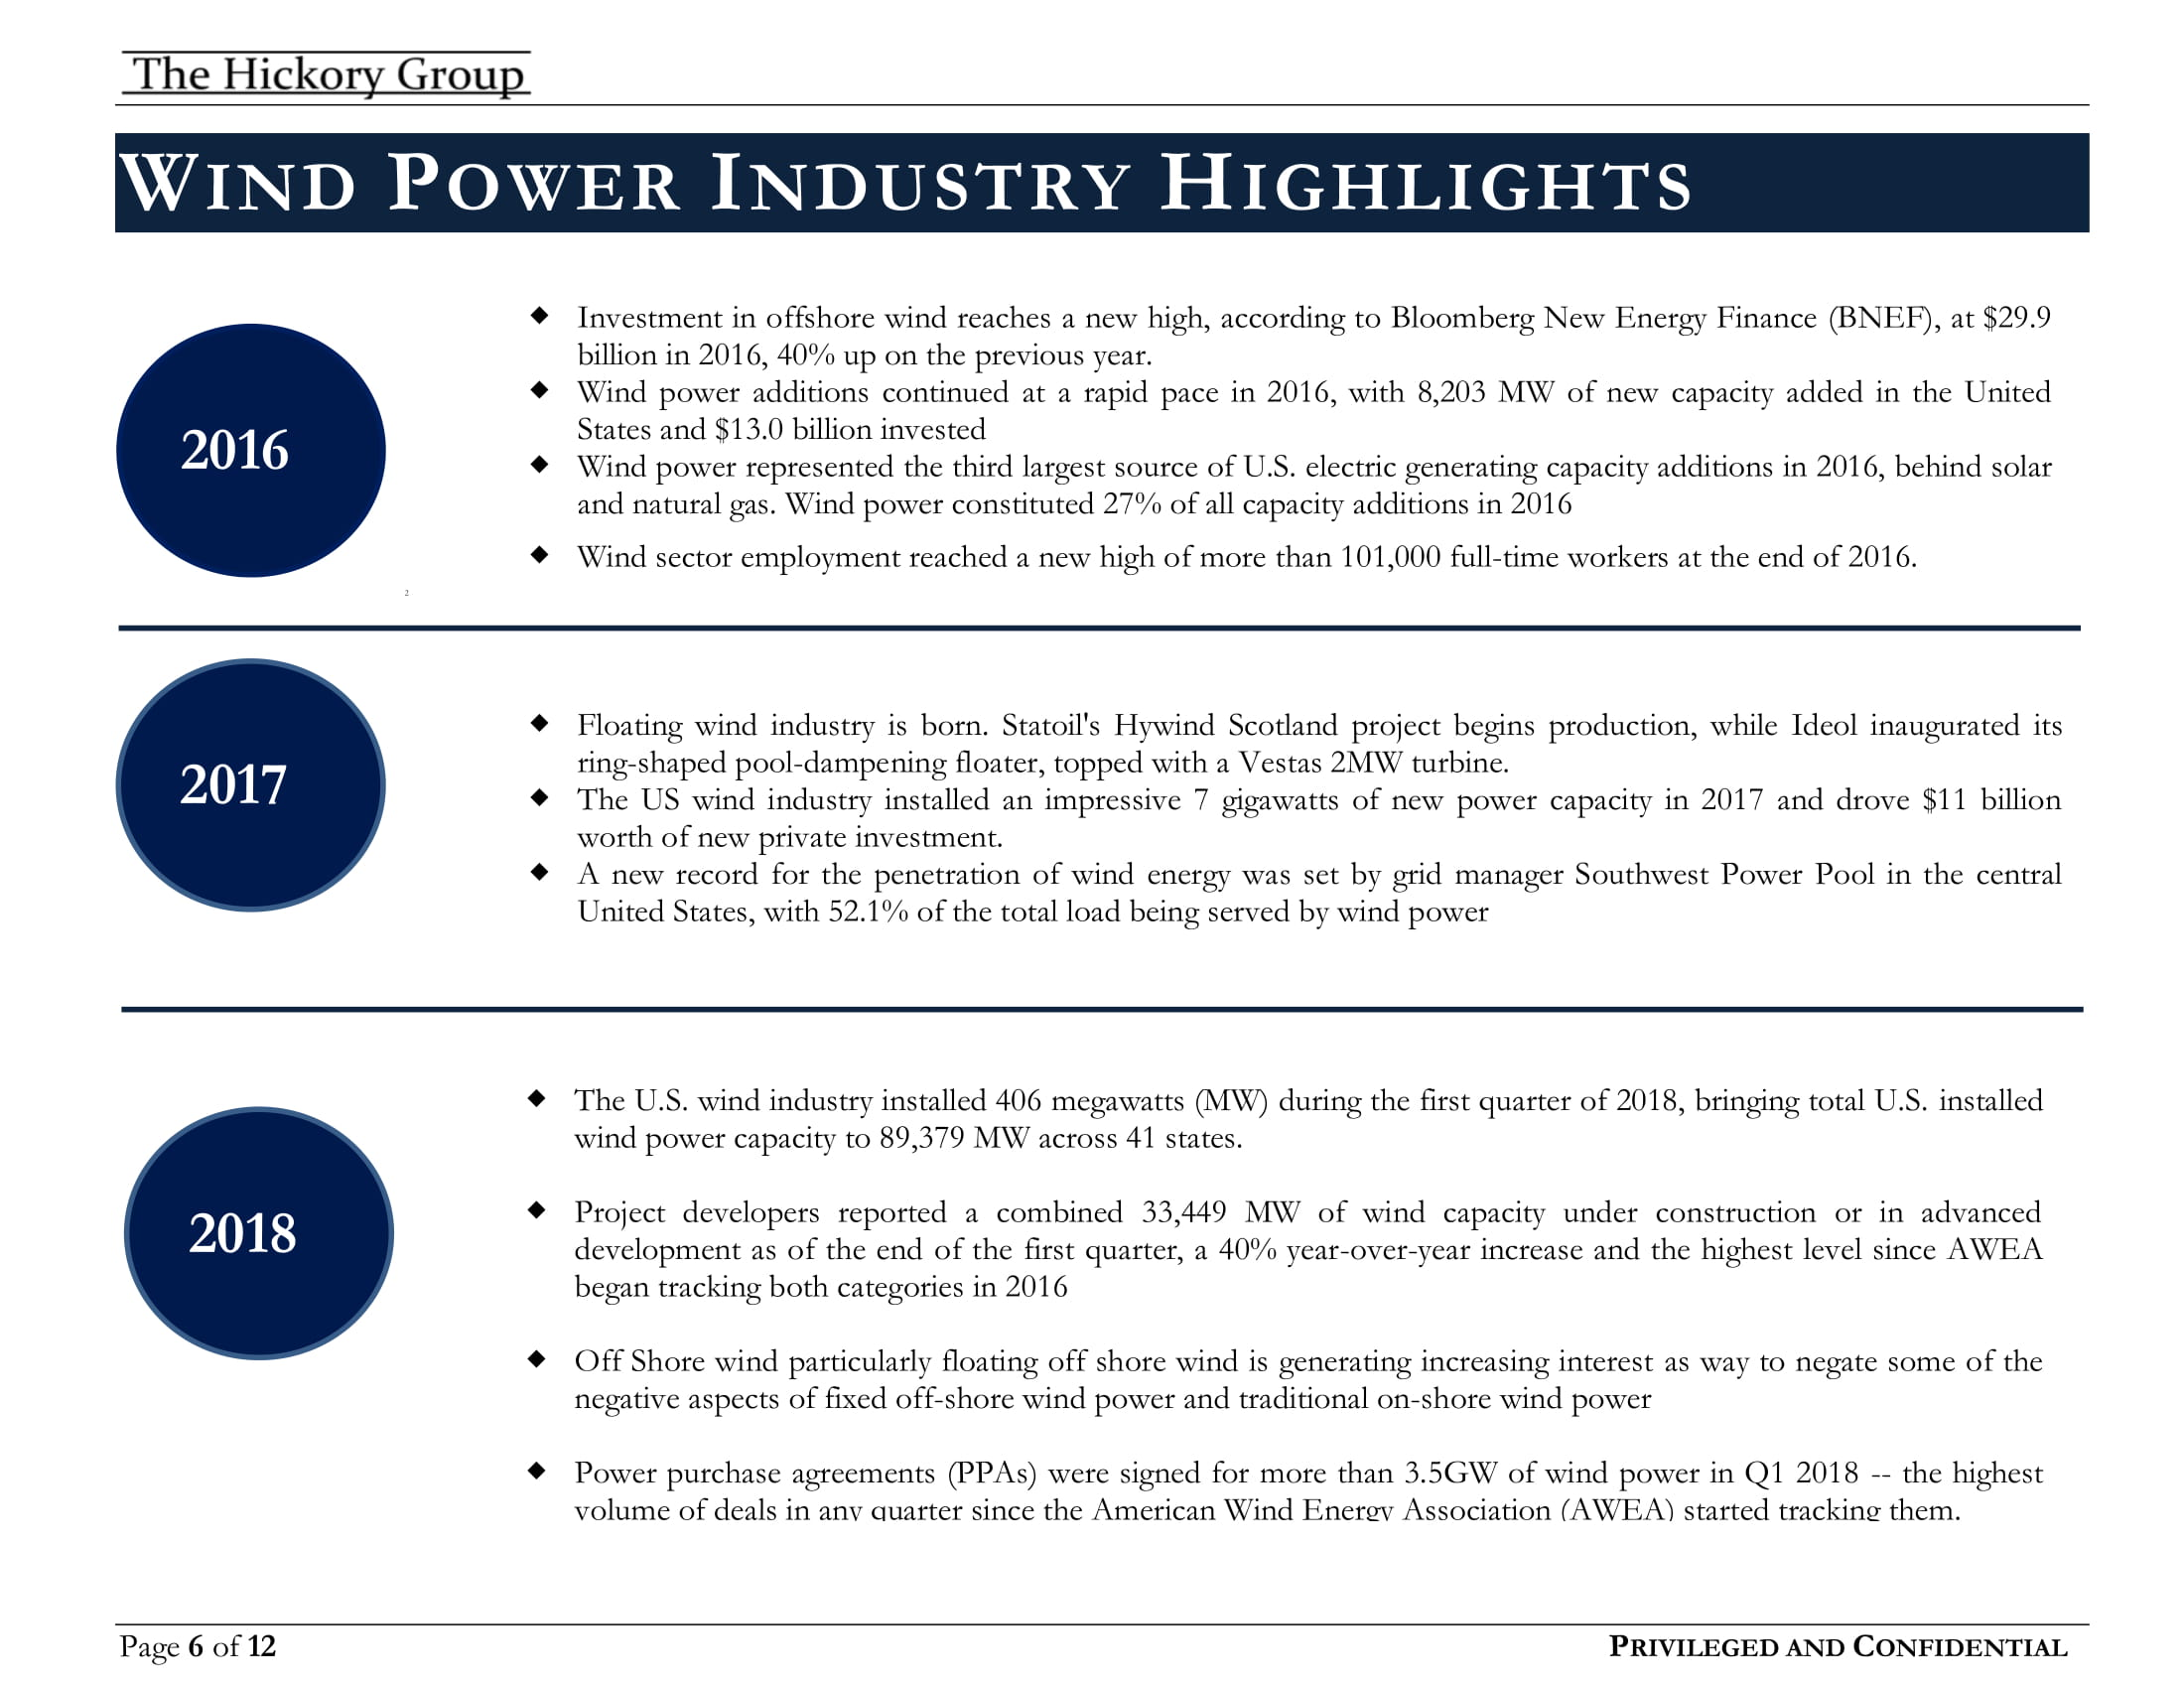 THG Wind Power Flash Report (July 2018) Privileged and Confidential copy[1]-06.jpg